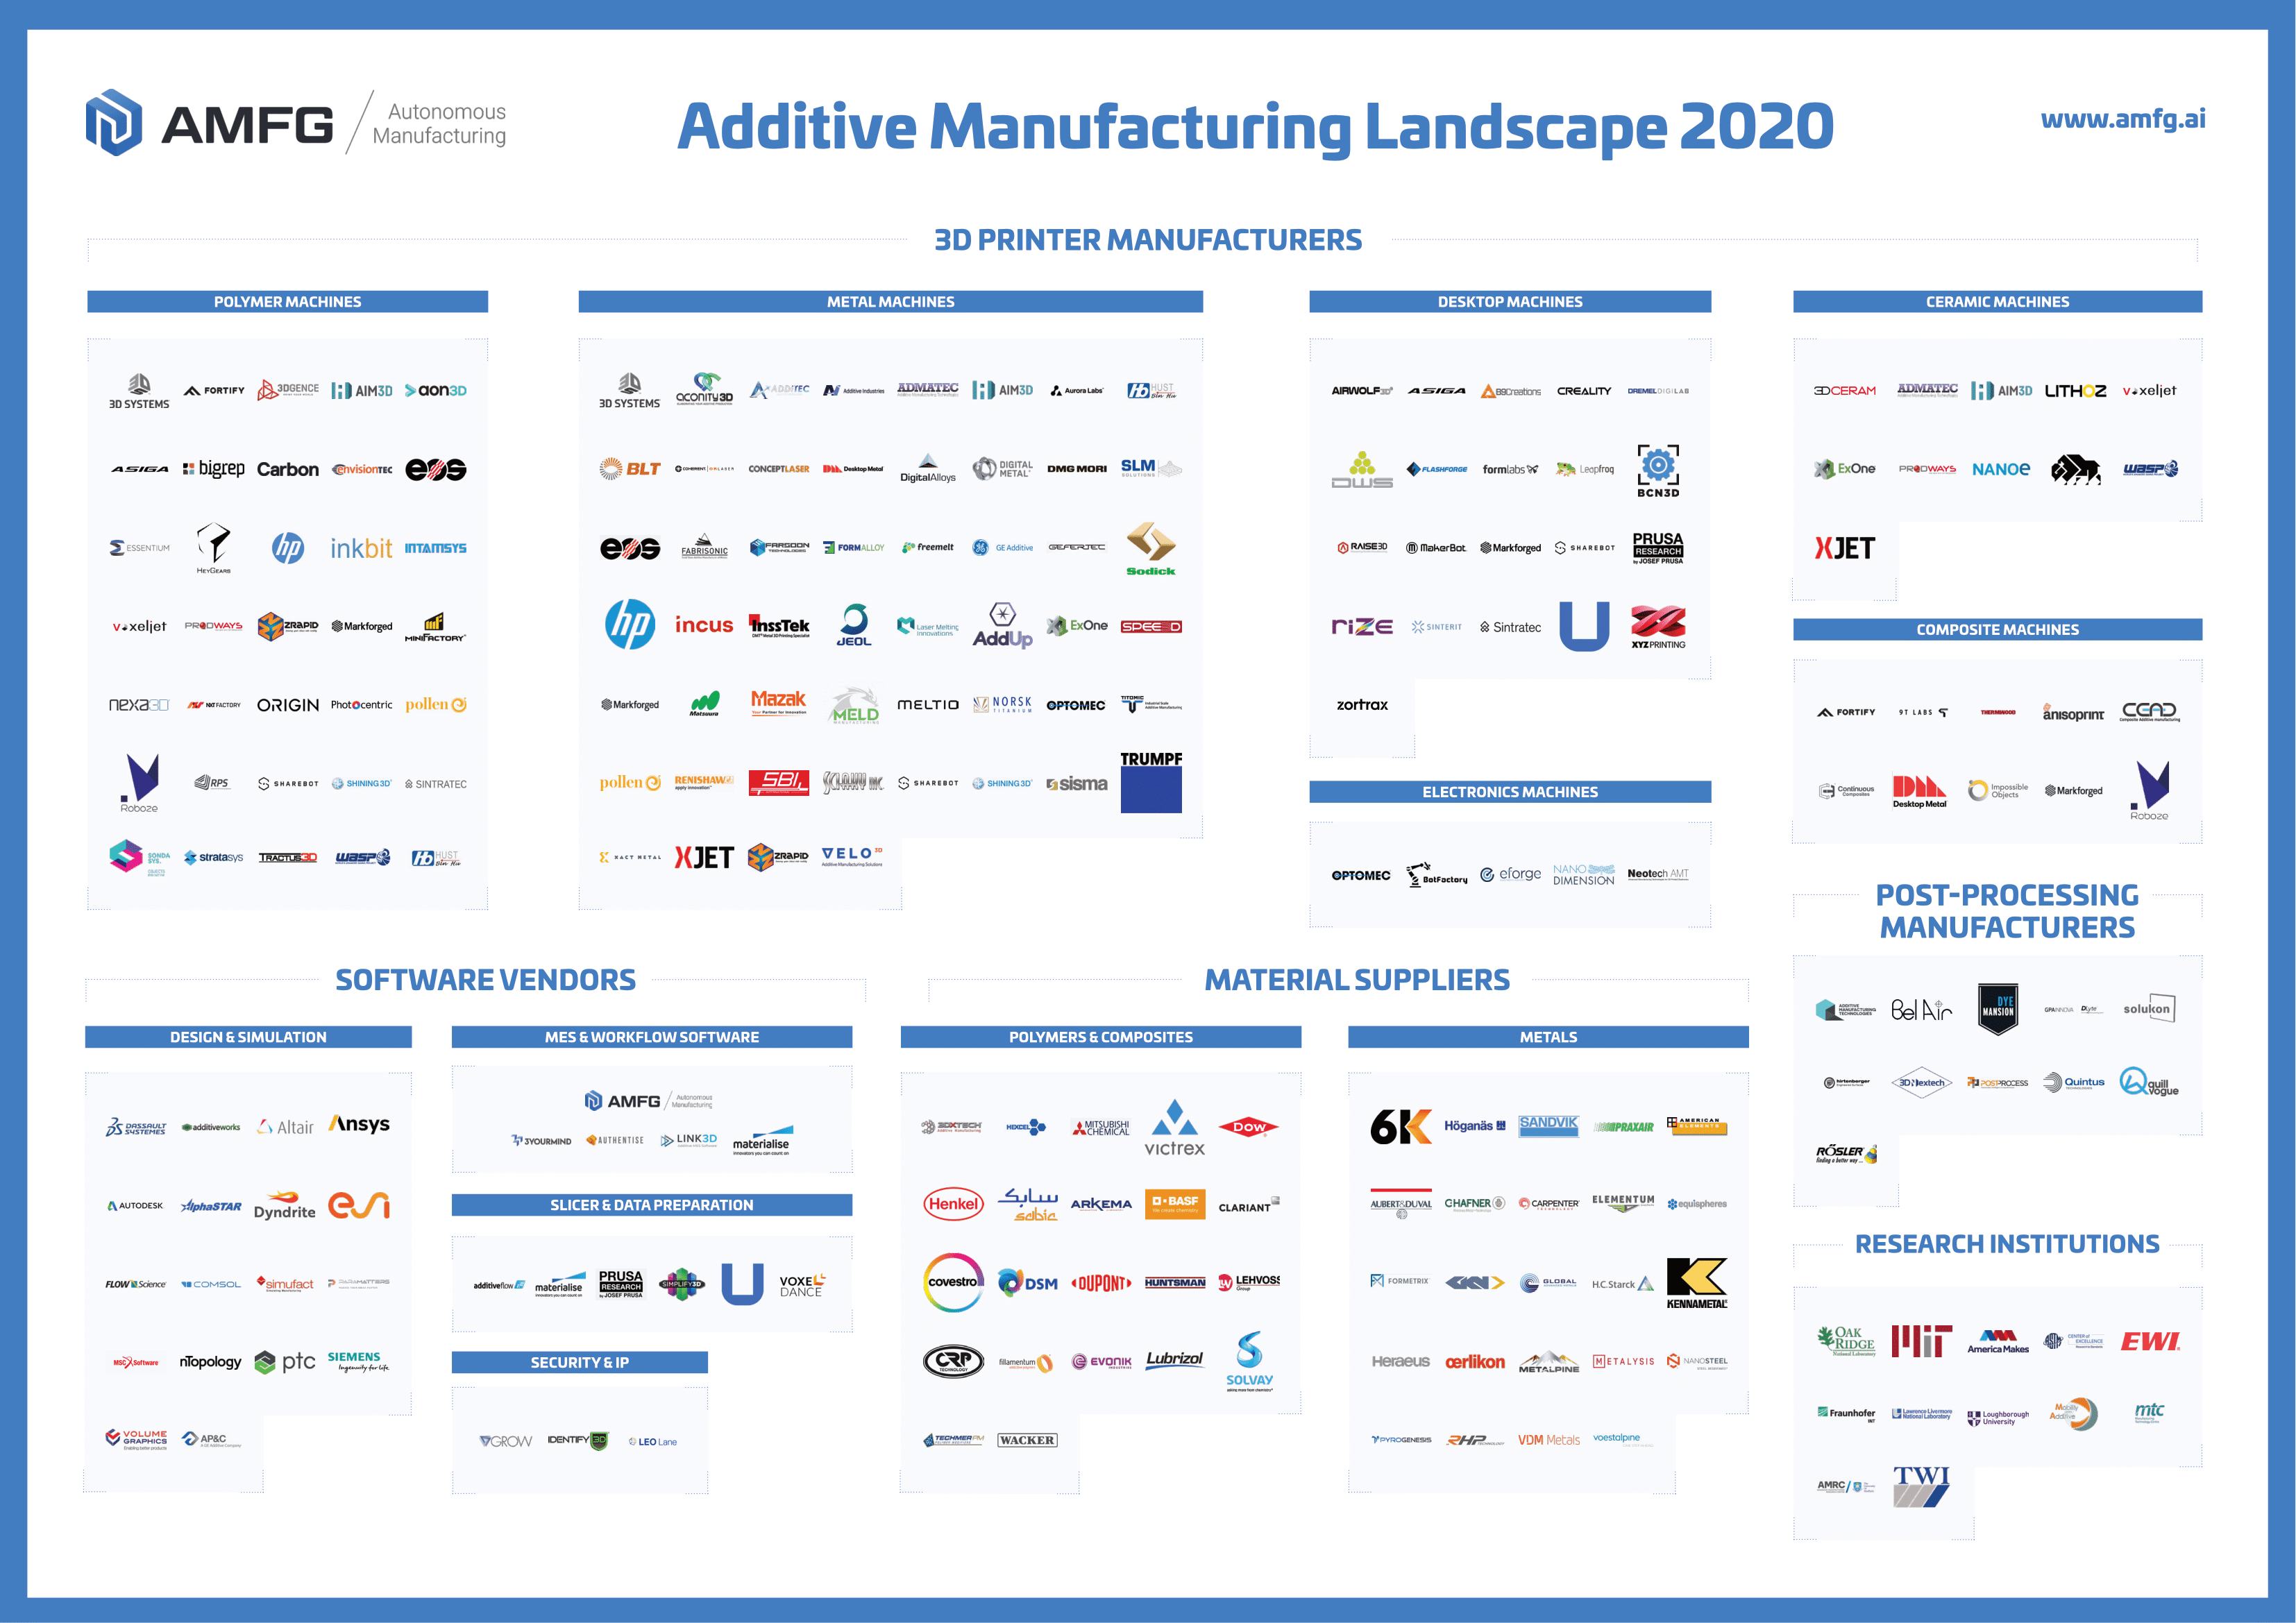 AMFG Publishes its Second Annual Additive Manufacturing Landscape 2020